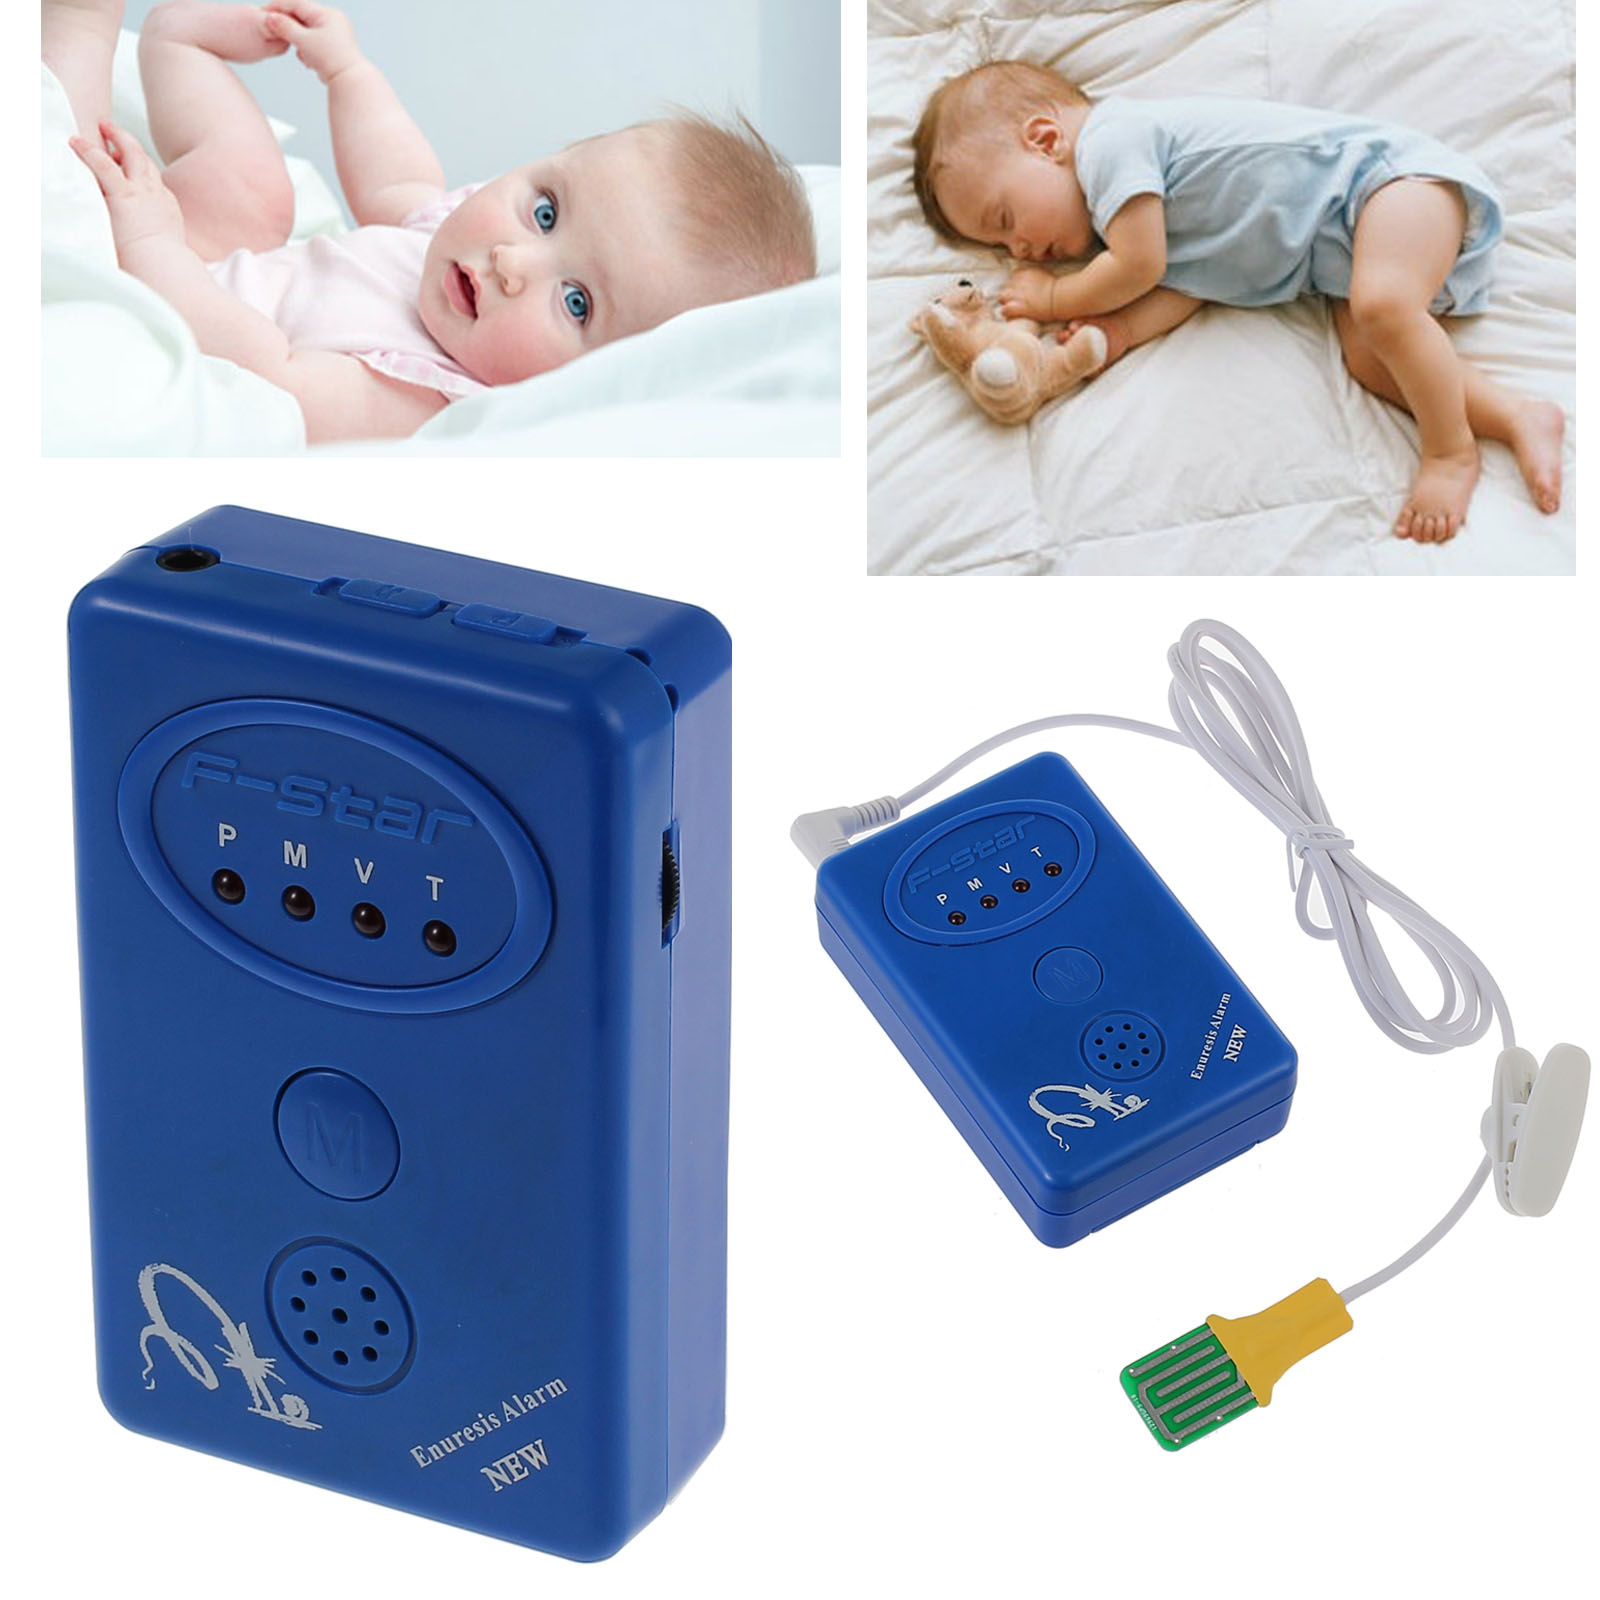 bed alarm wetting enuresis urine baby sensor bedwetting child kid